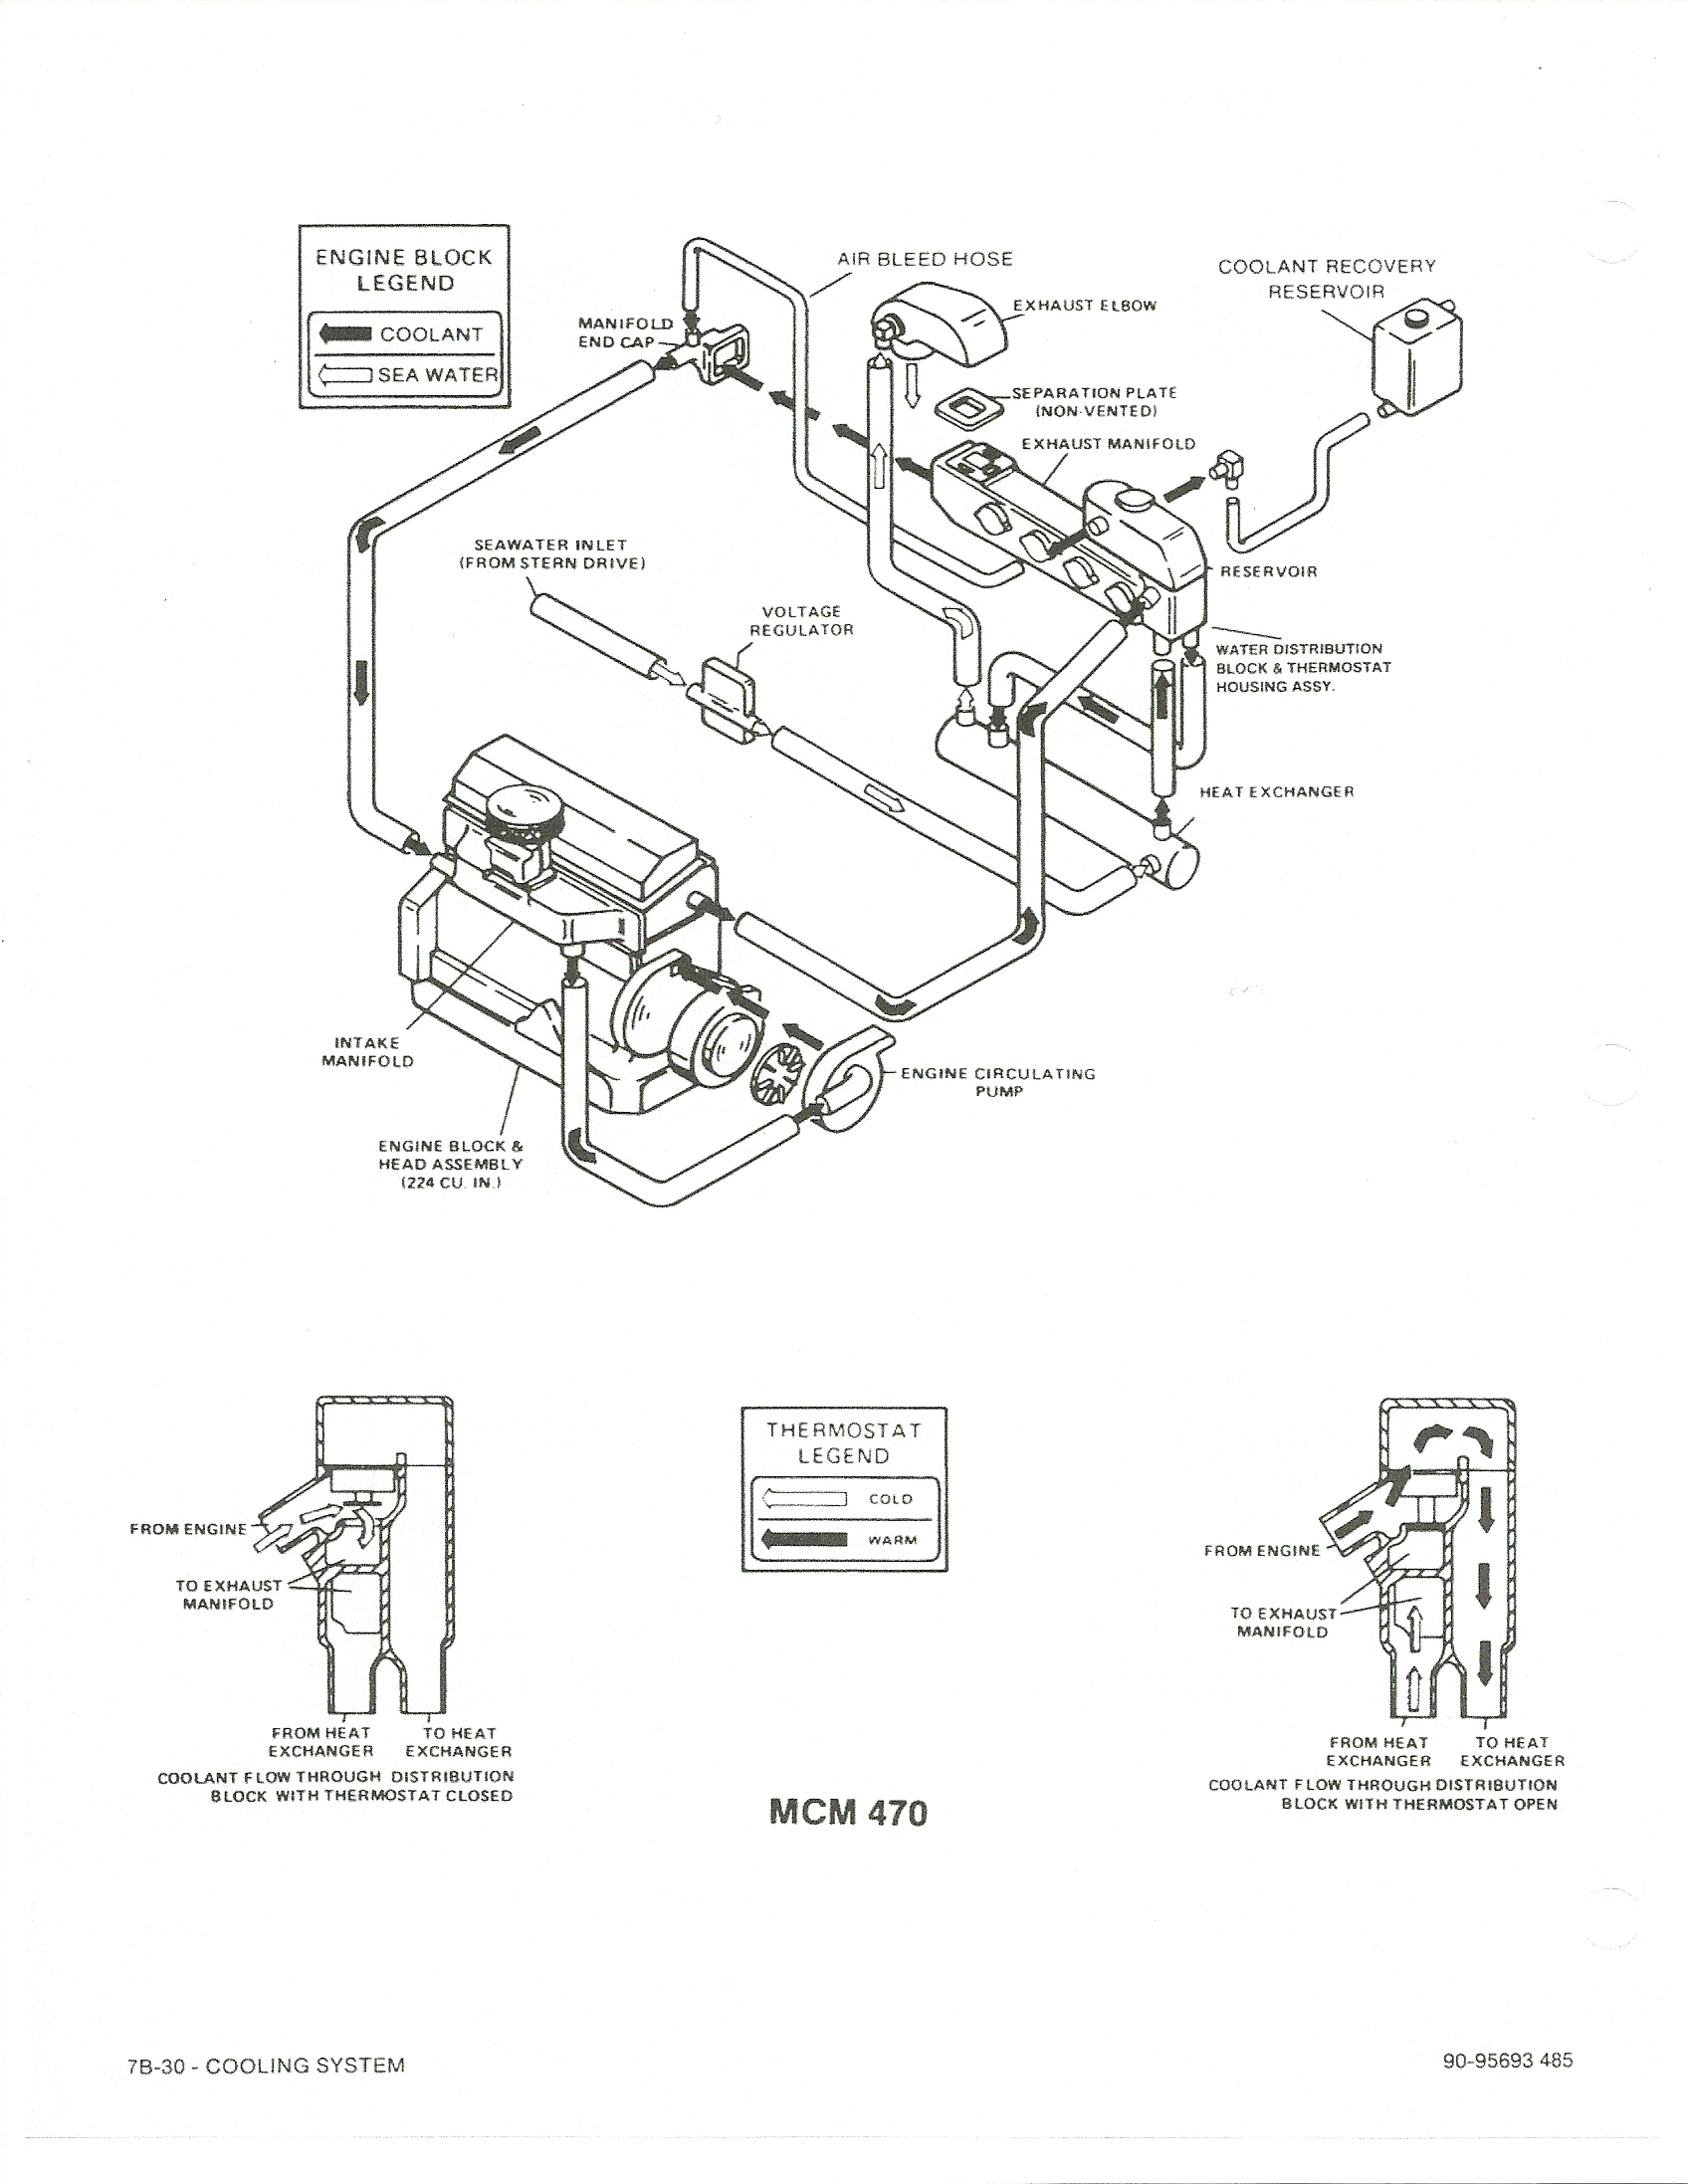 mercruiser 4 3 thermostat diagram